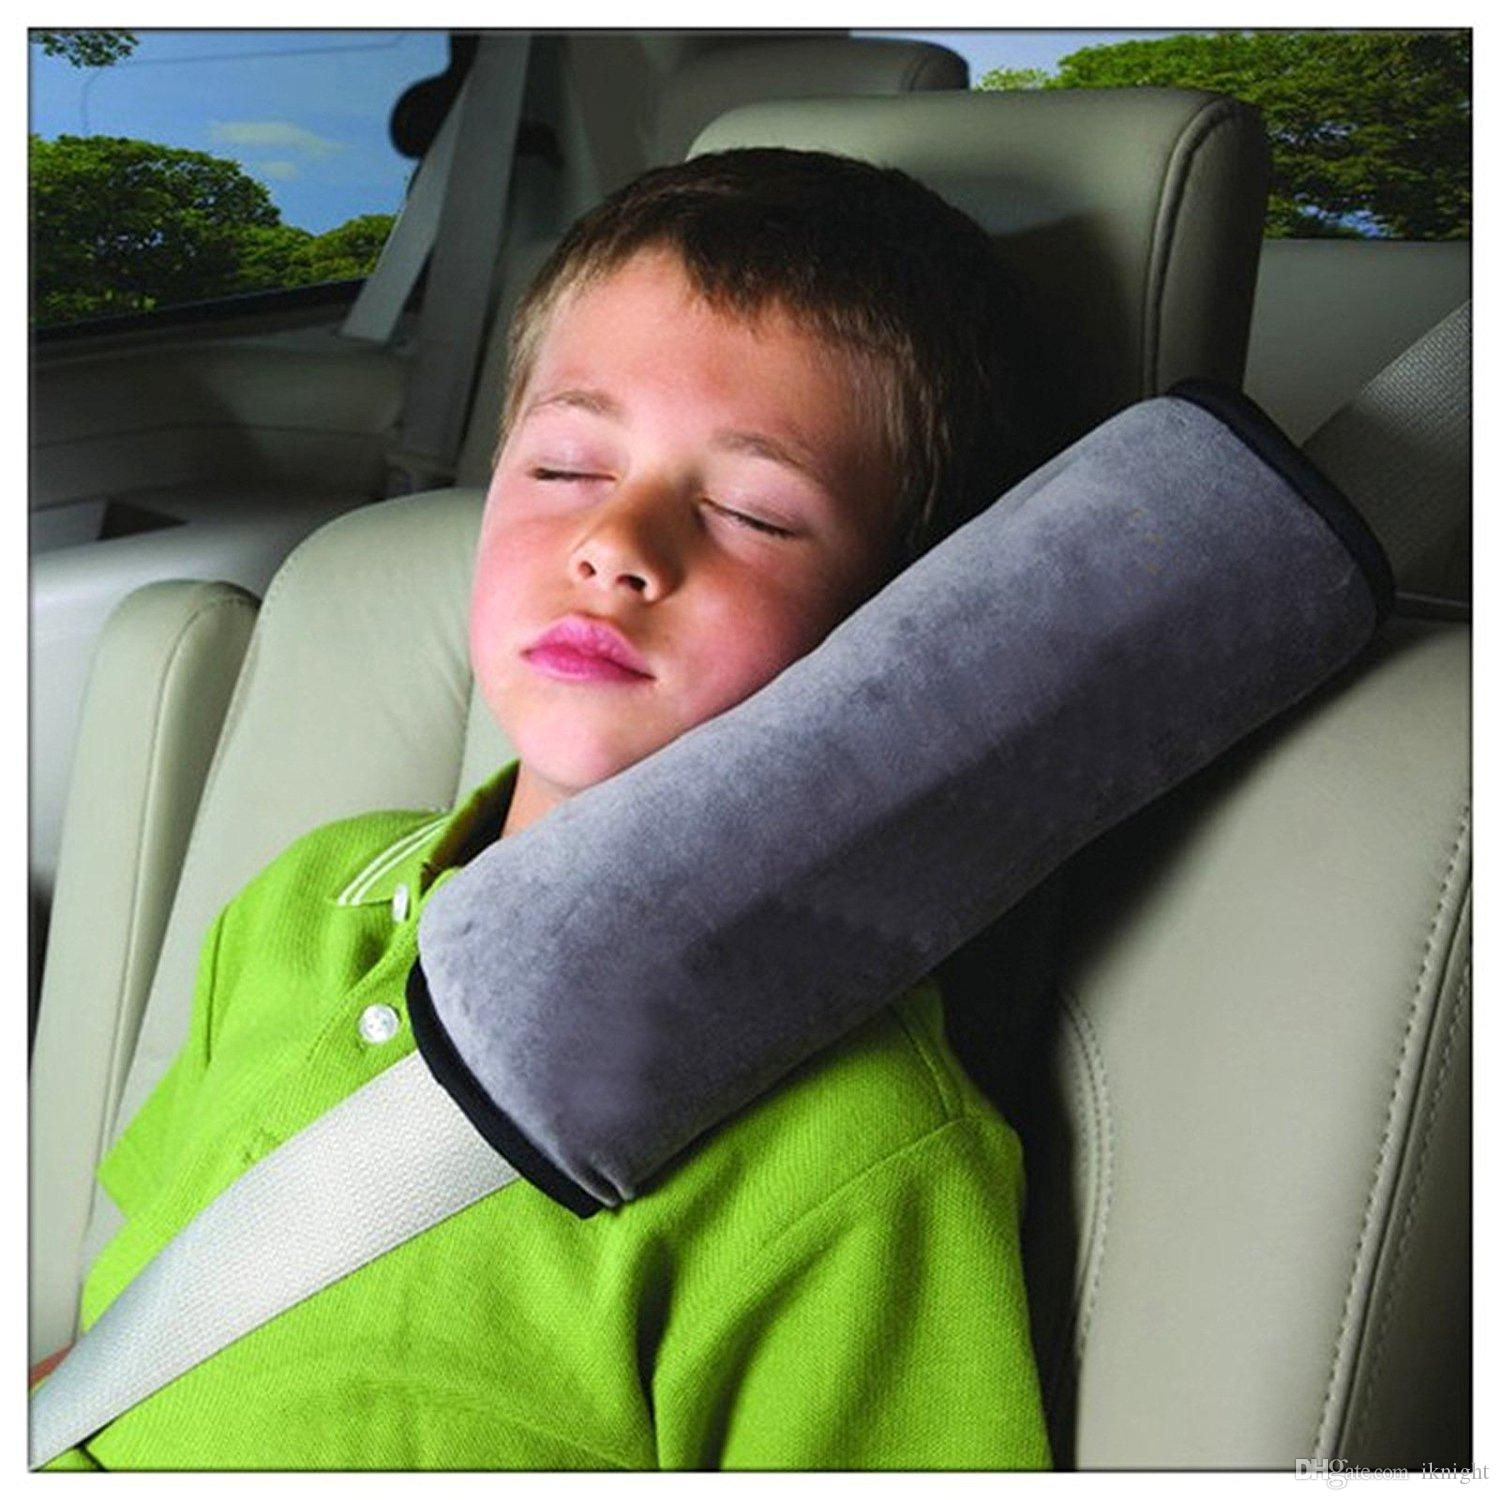 Seatbelt PillowCar Seat Belt Covers For KidsAdjust Vehicle Shoulder PadsSafety Protector CushionPlush Soft Auto Strap Replacement